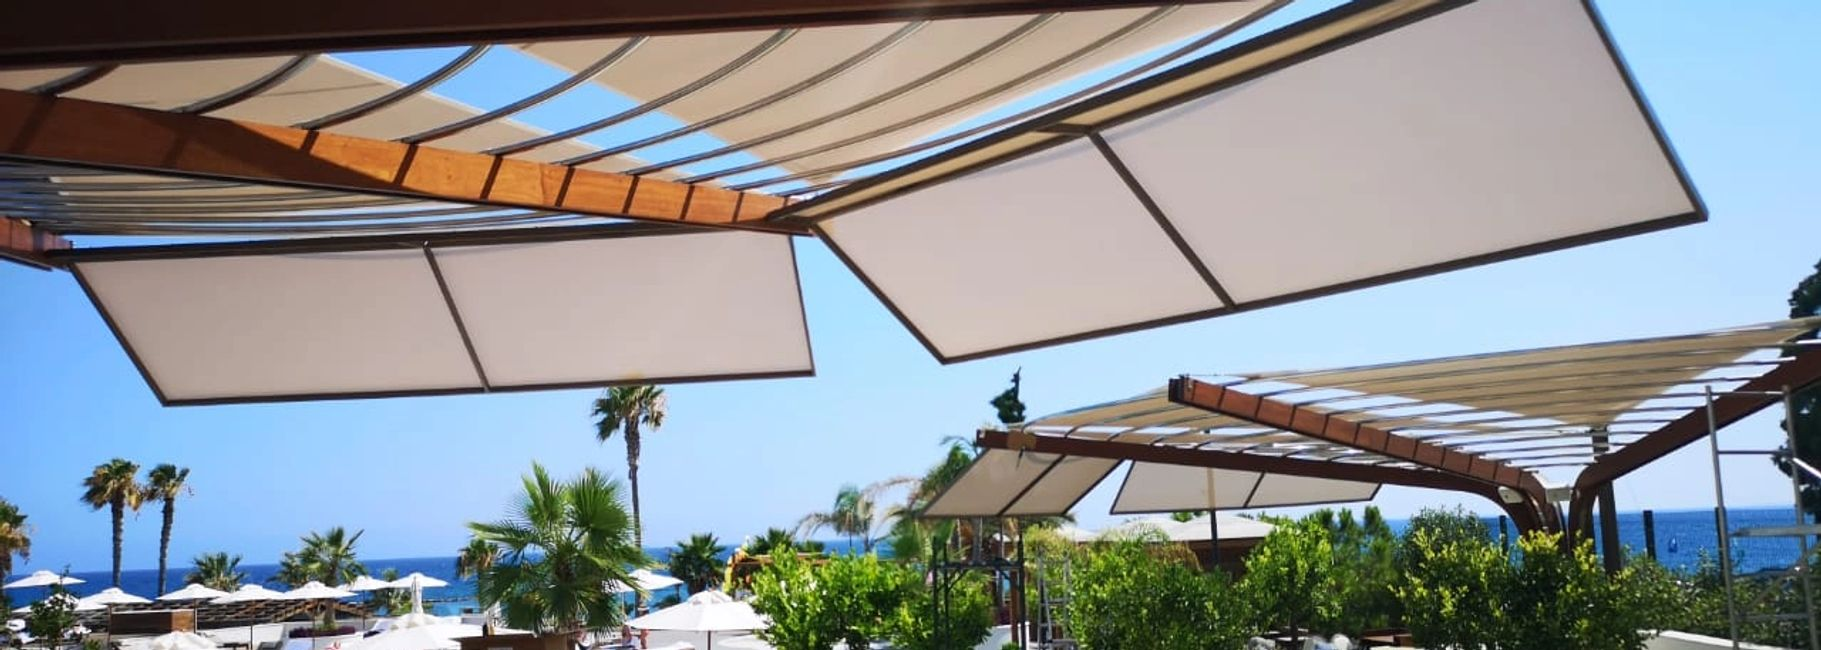 Shade sails covering a canopy construction, by Shadeports Plus Ltd., Cyprus.